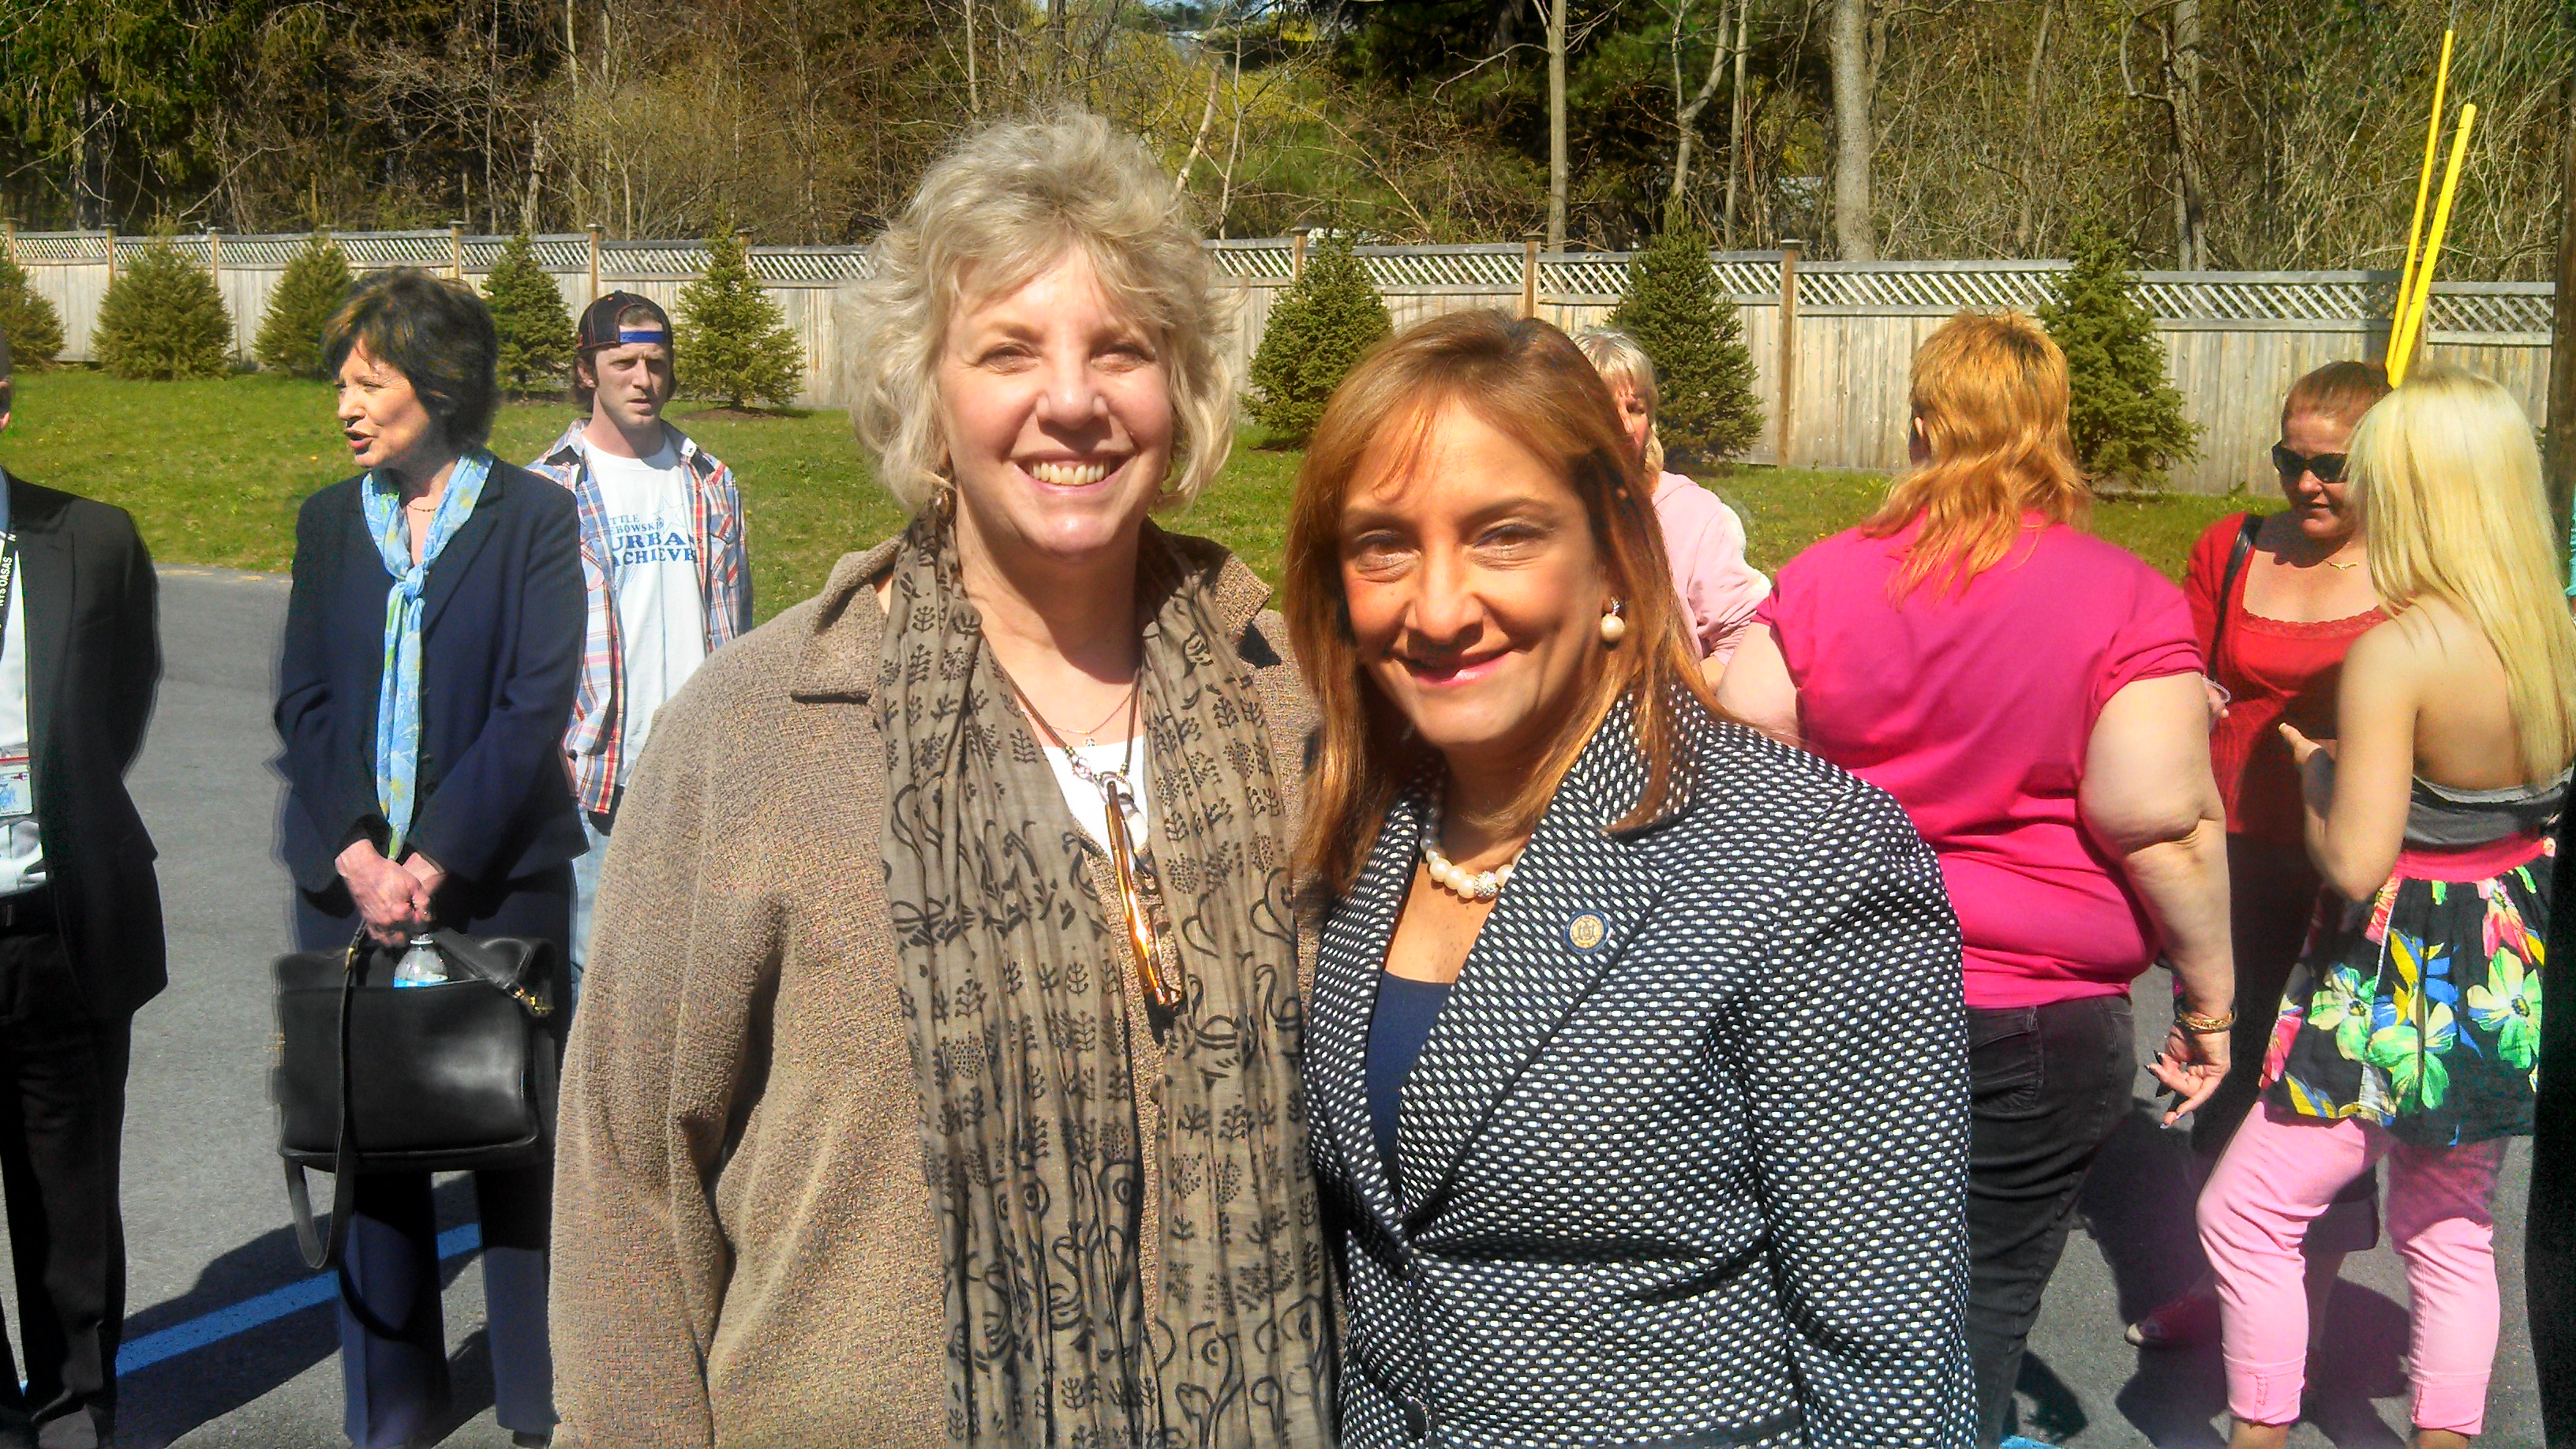 Barrett with Commissioner Arlene Gonzalez-Sanchez of the NYS Office of Alcoholism and Substance Abuse Services.